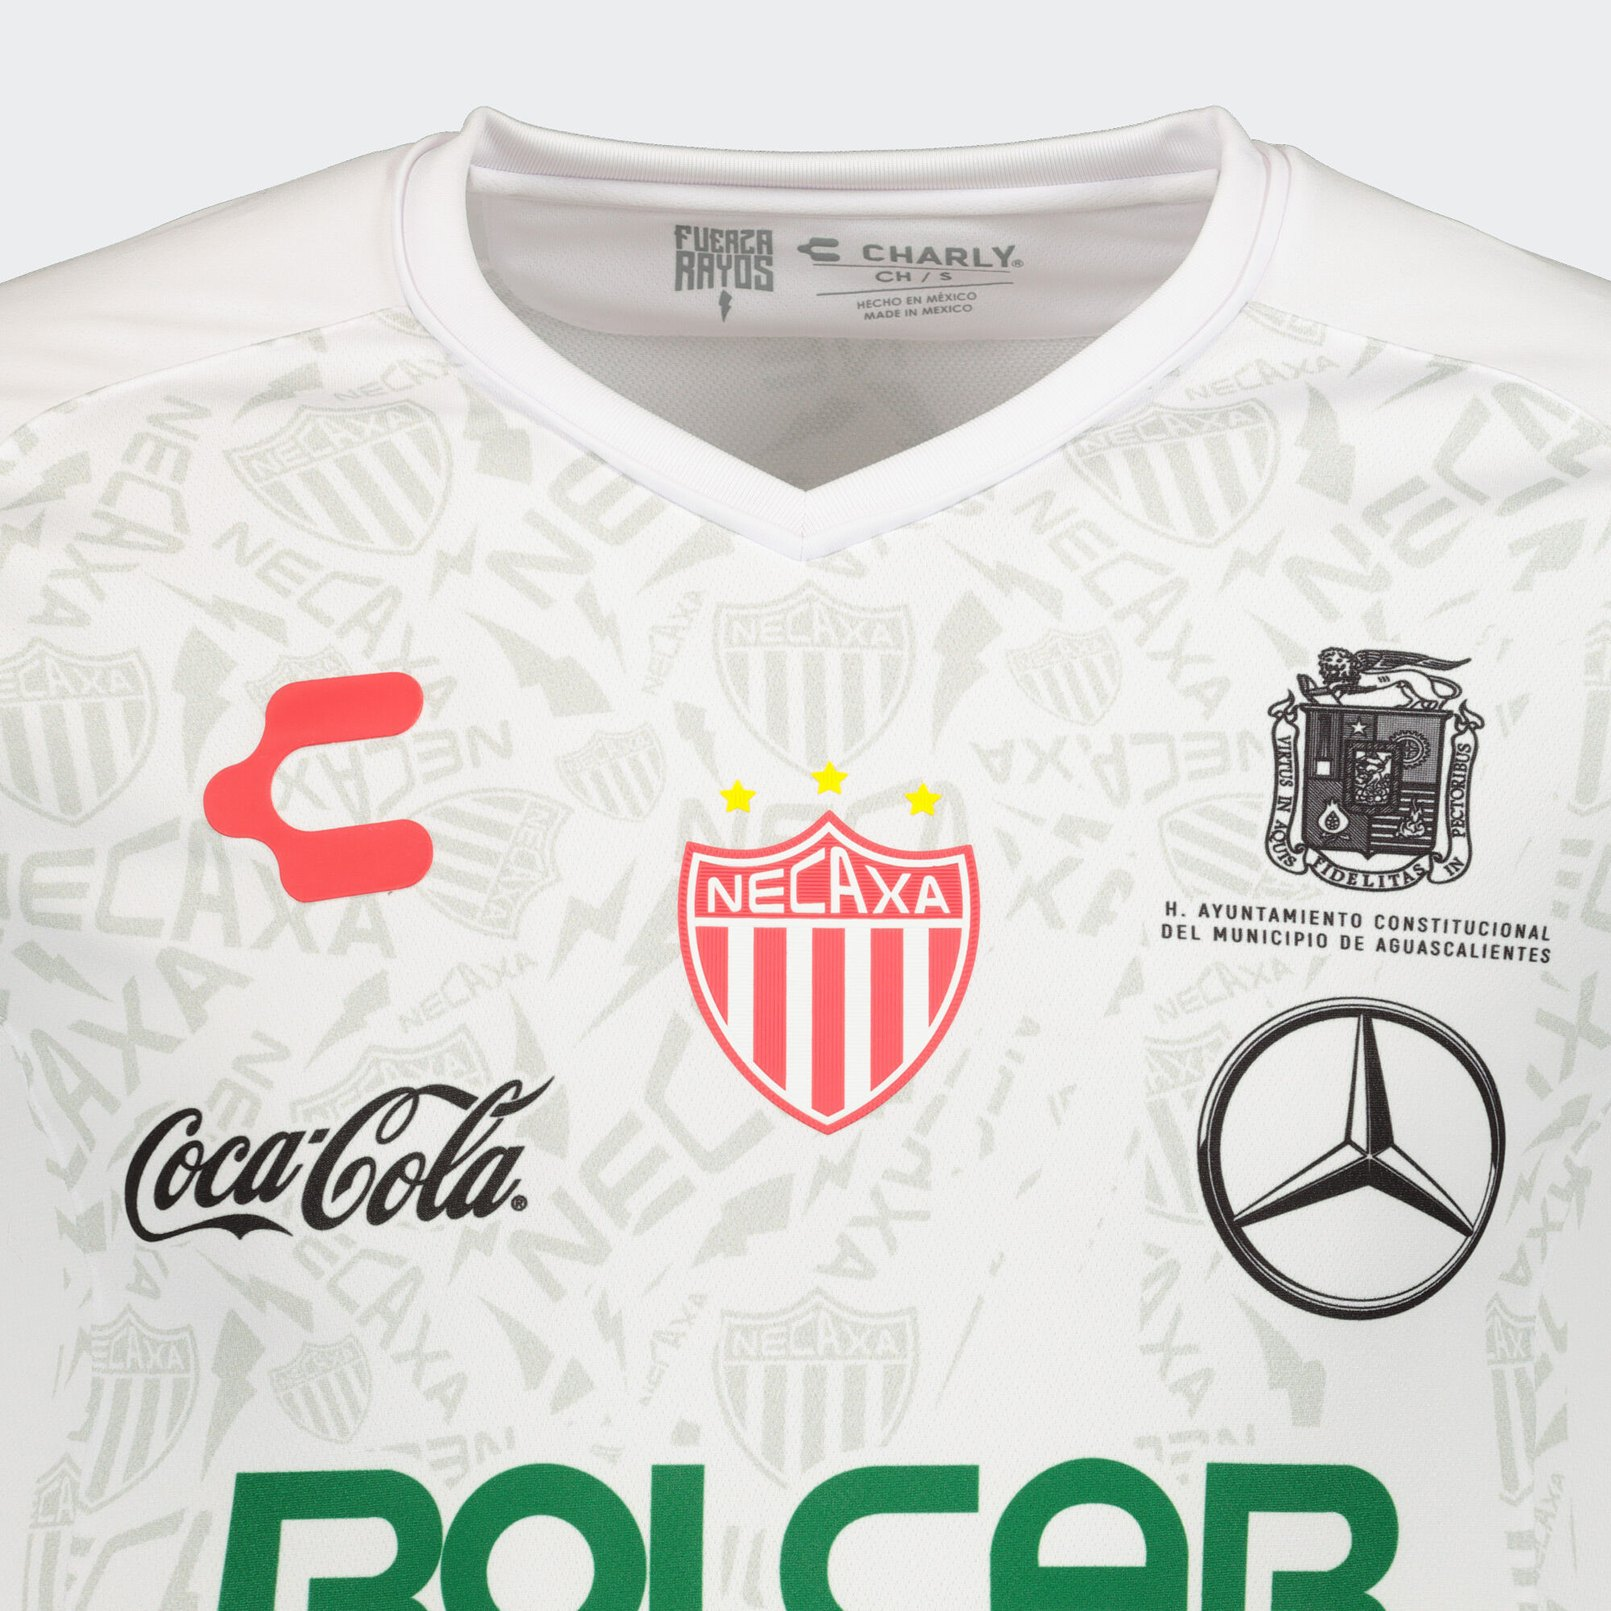 Camiseta local del Club Necaxa 2019/2020 | Imagen Charly